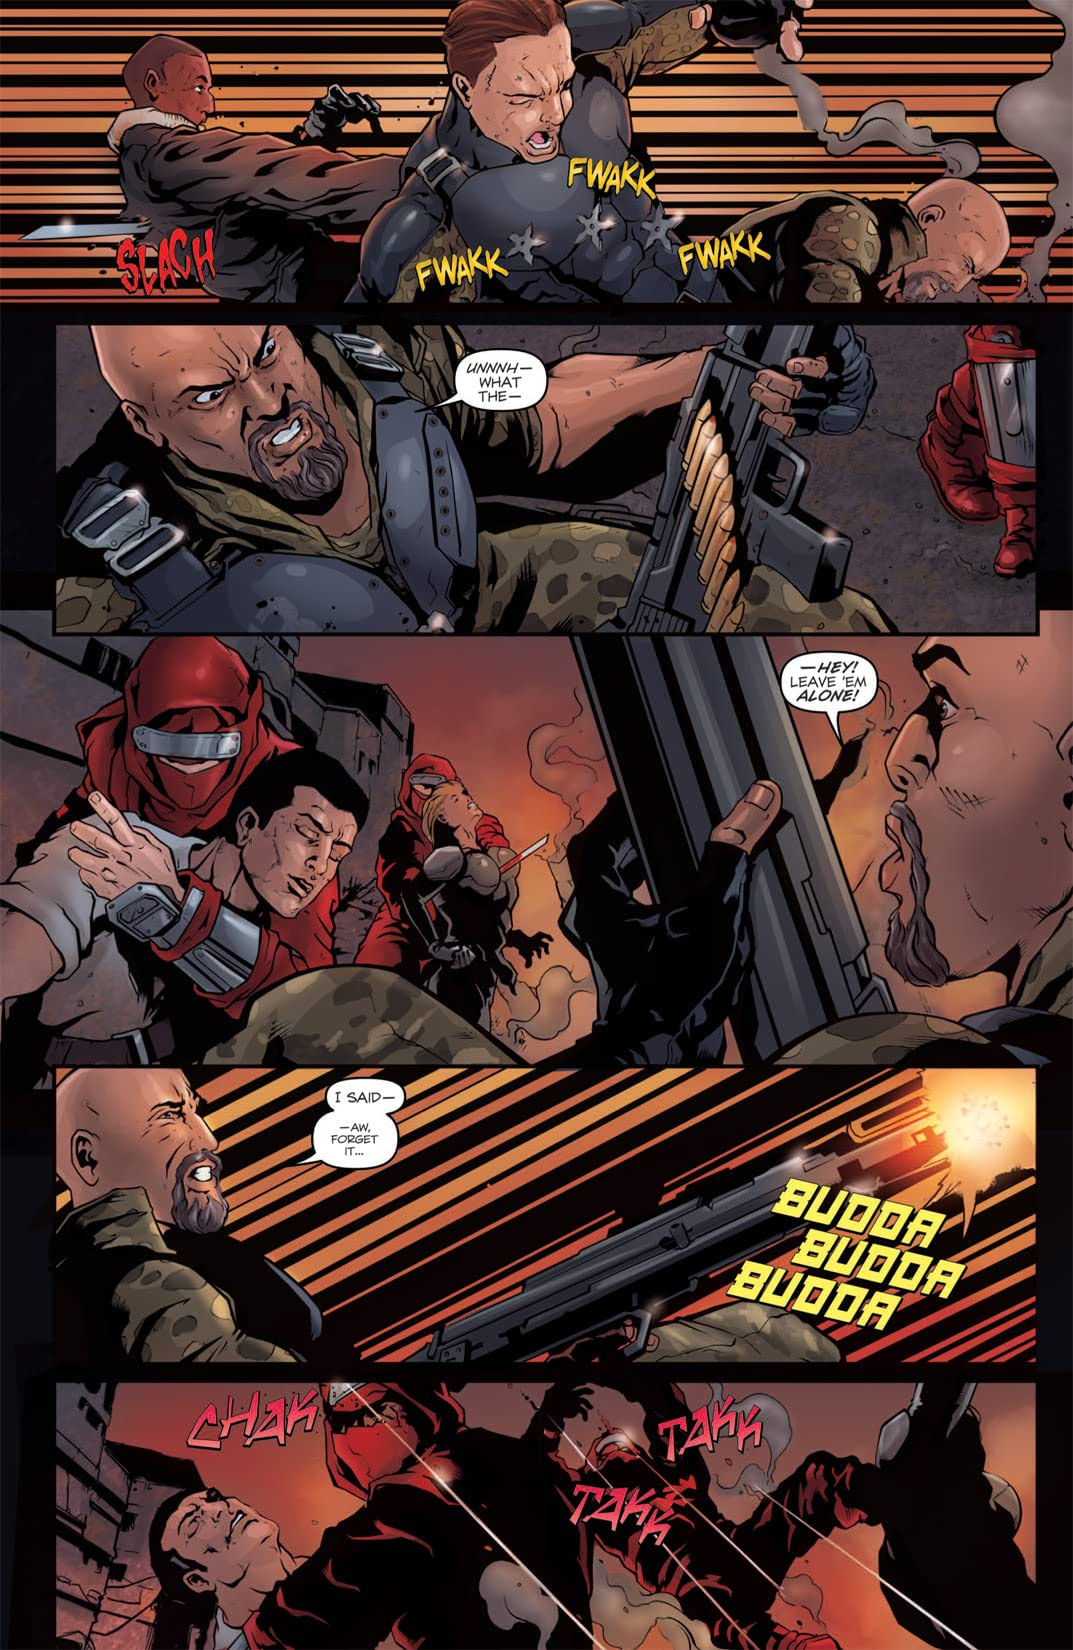 G.I. Joe 2: Movie Prequel - Retaliation